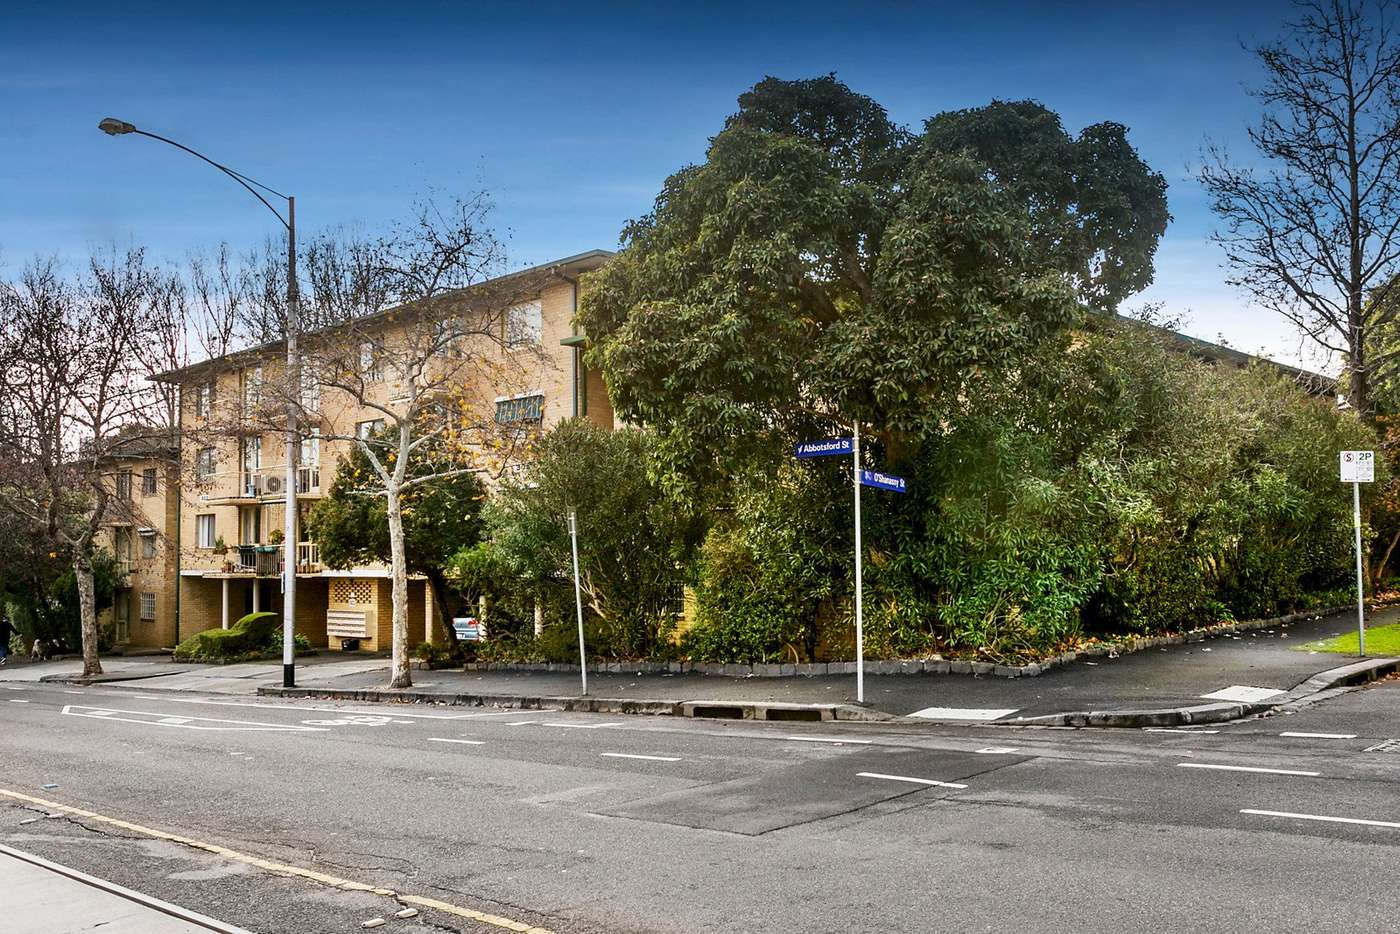 Main view of Homely apartment listing, 27/302 Abbotsford Street, North Melbourne VIC 3051